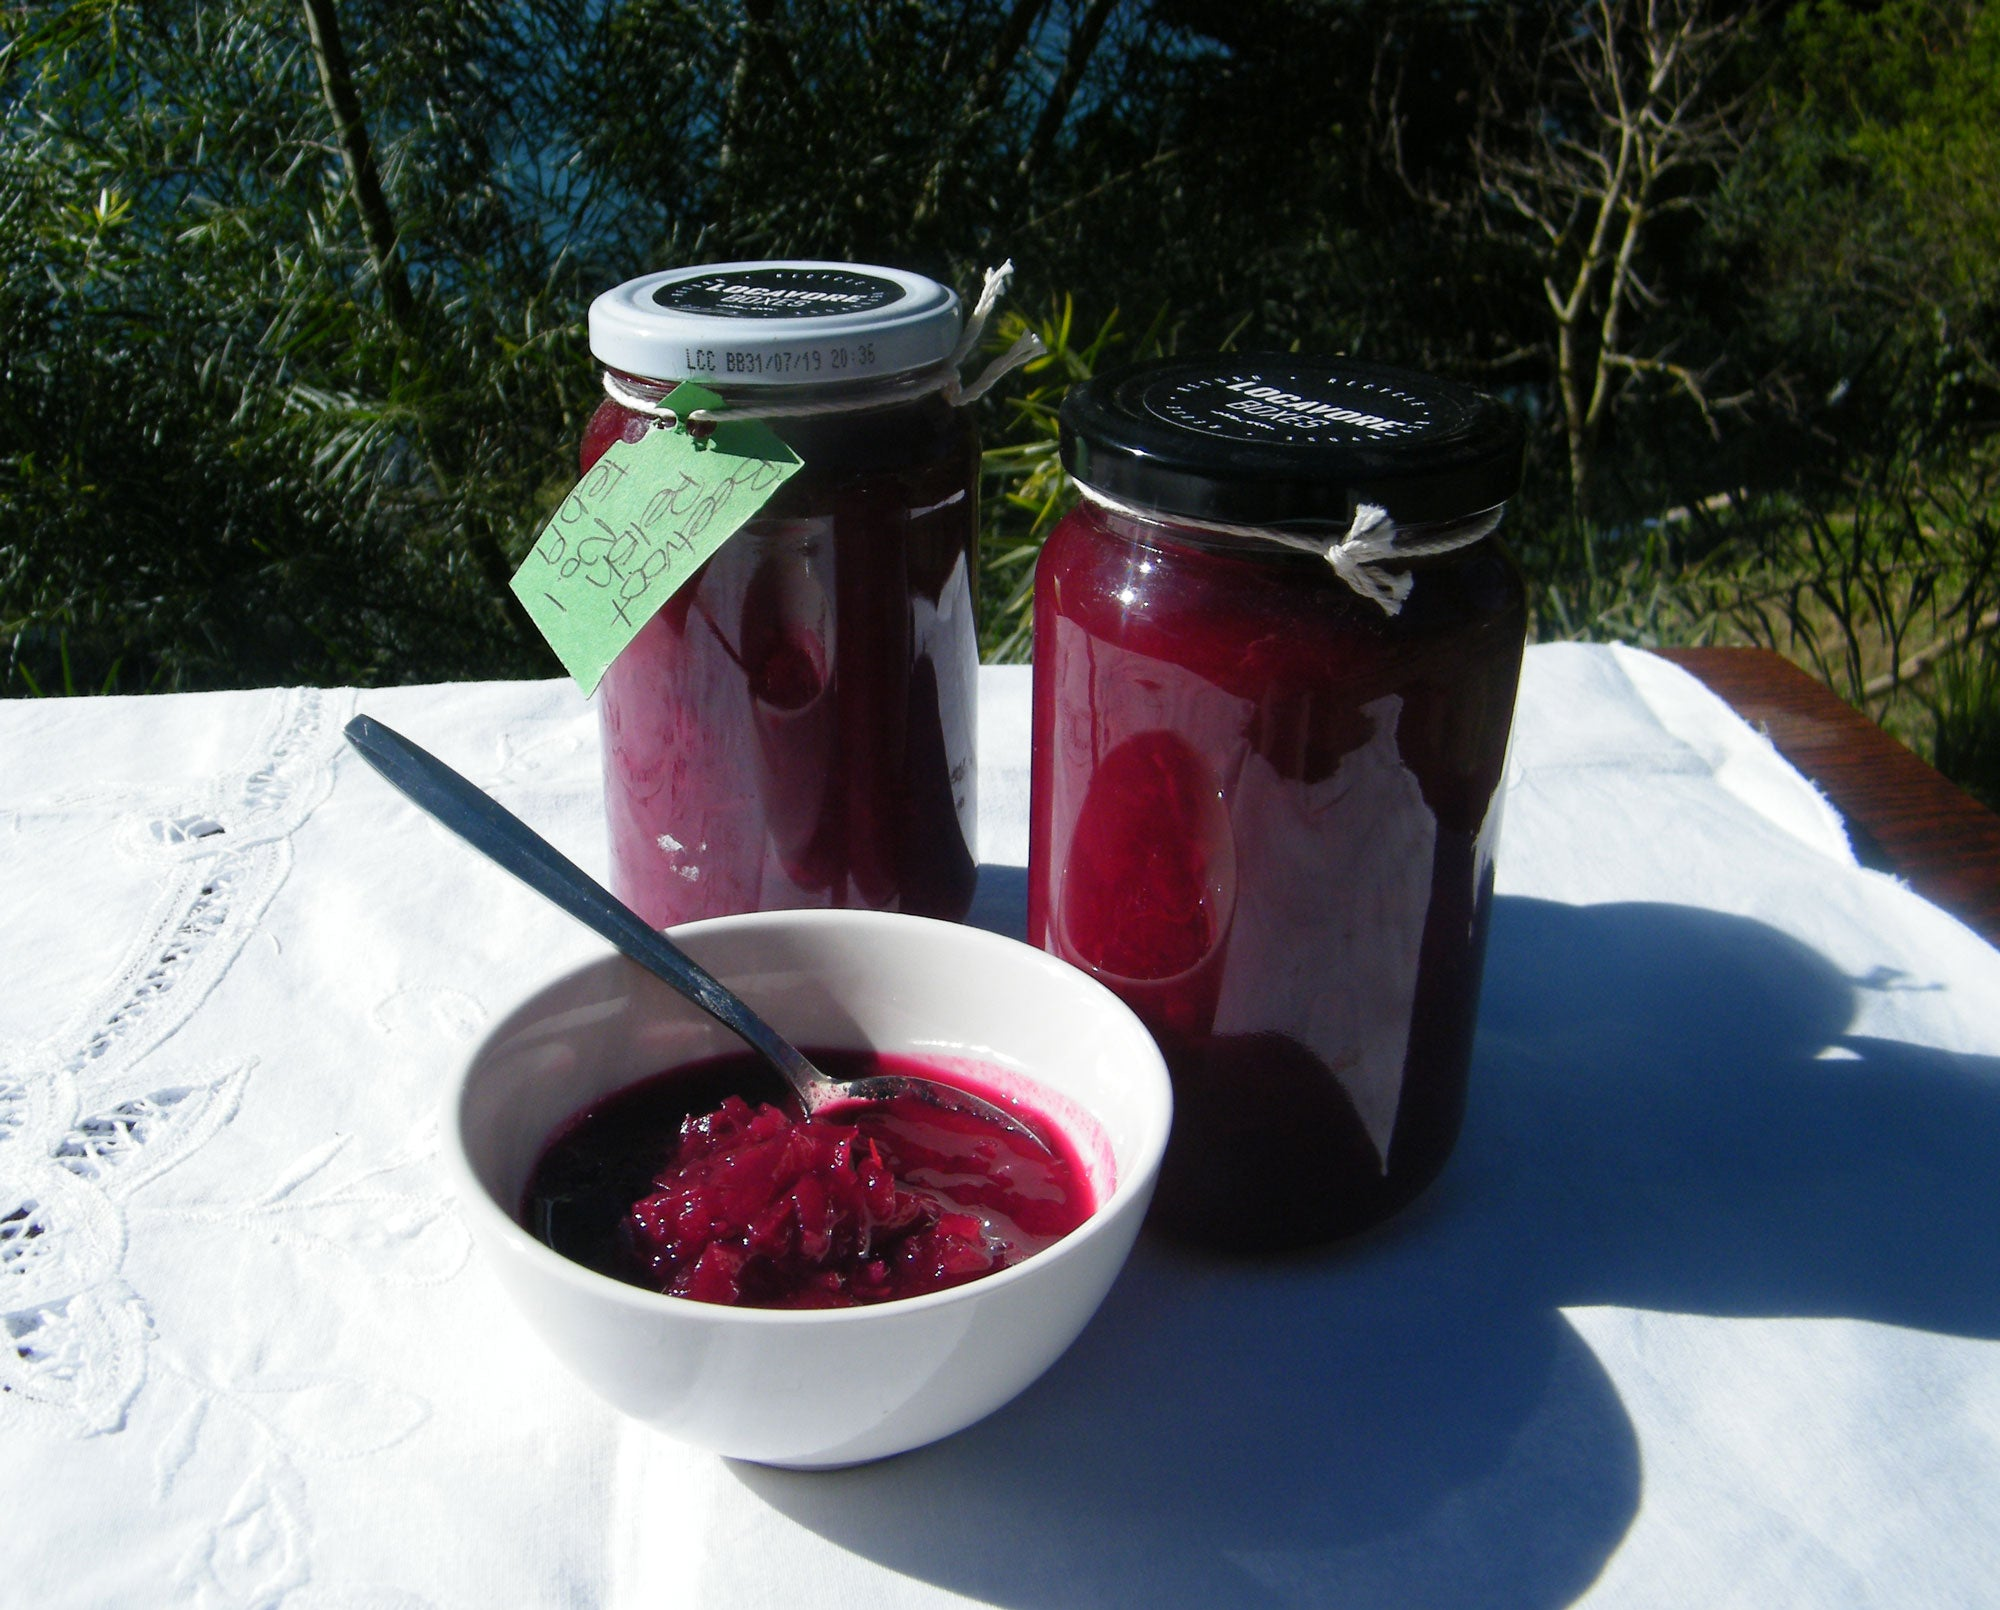 Preserves and Relishes